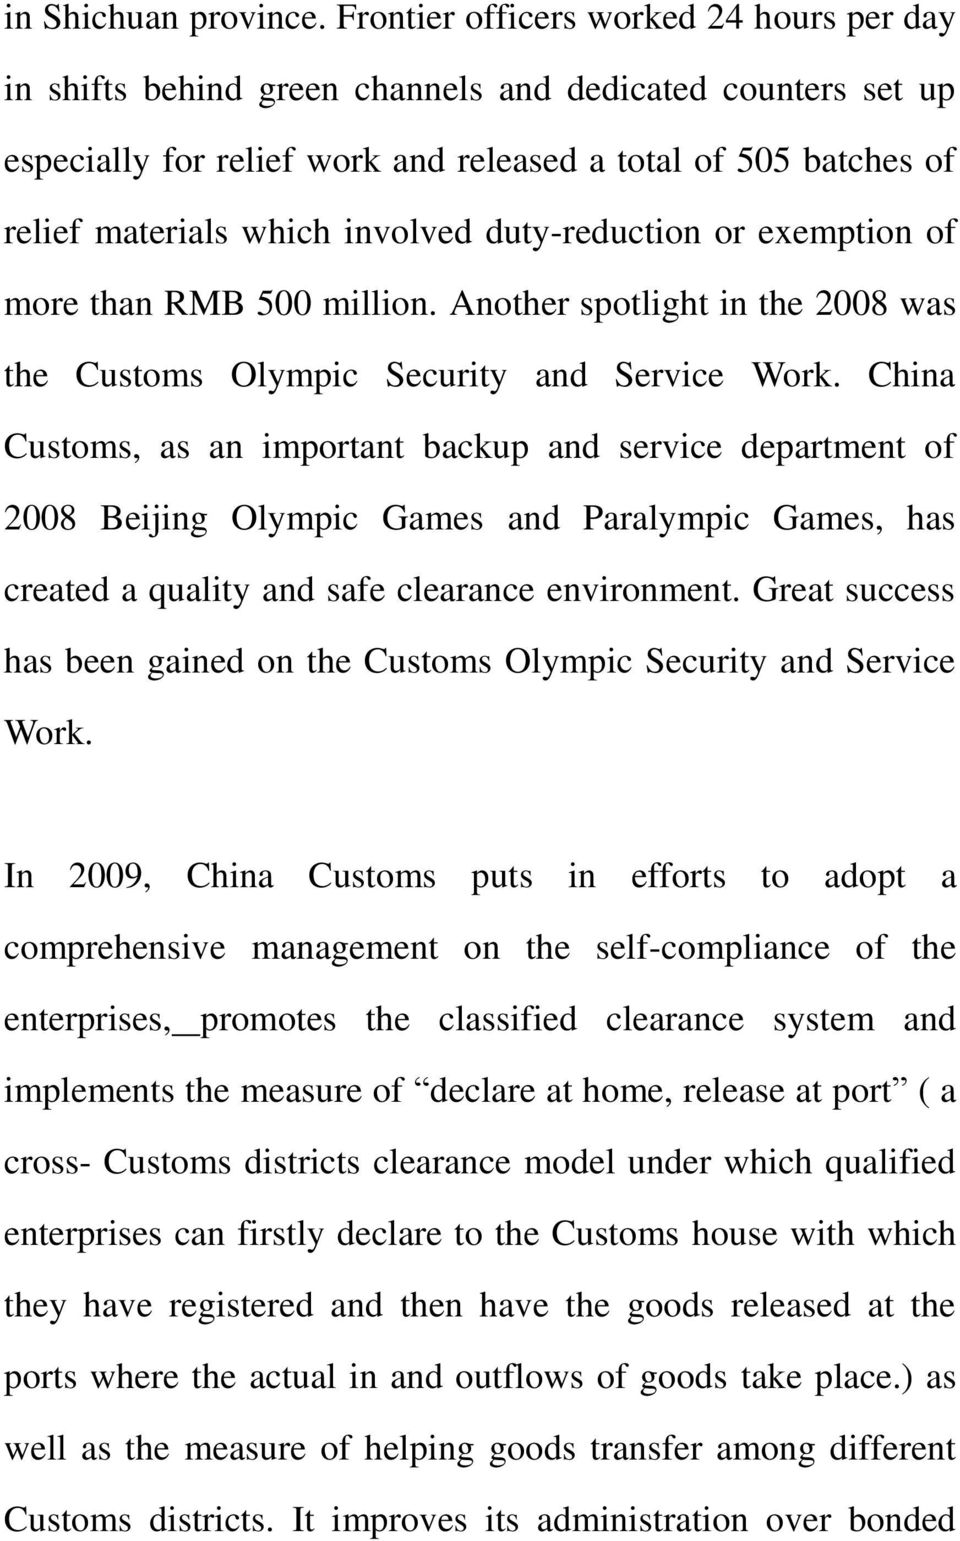 involved duty-reduction or exemption of more than RMB 500 million. Another spotlight in the 2008 was the Customs Olympic Security and Service Work.